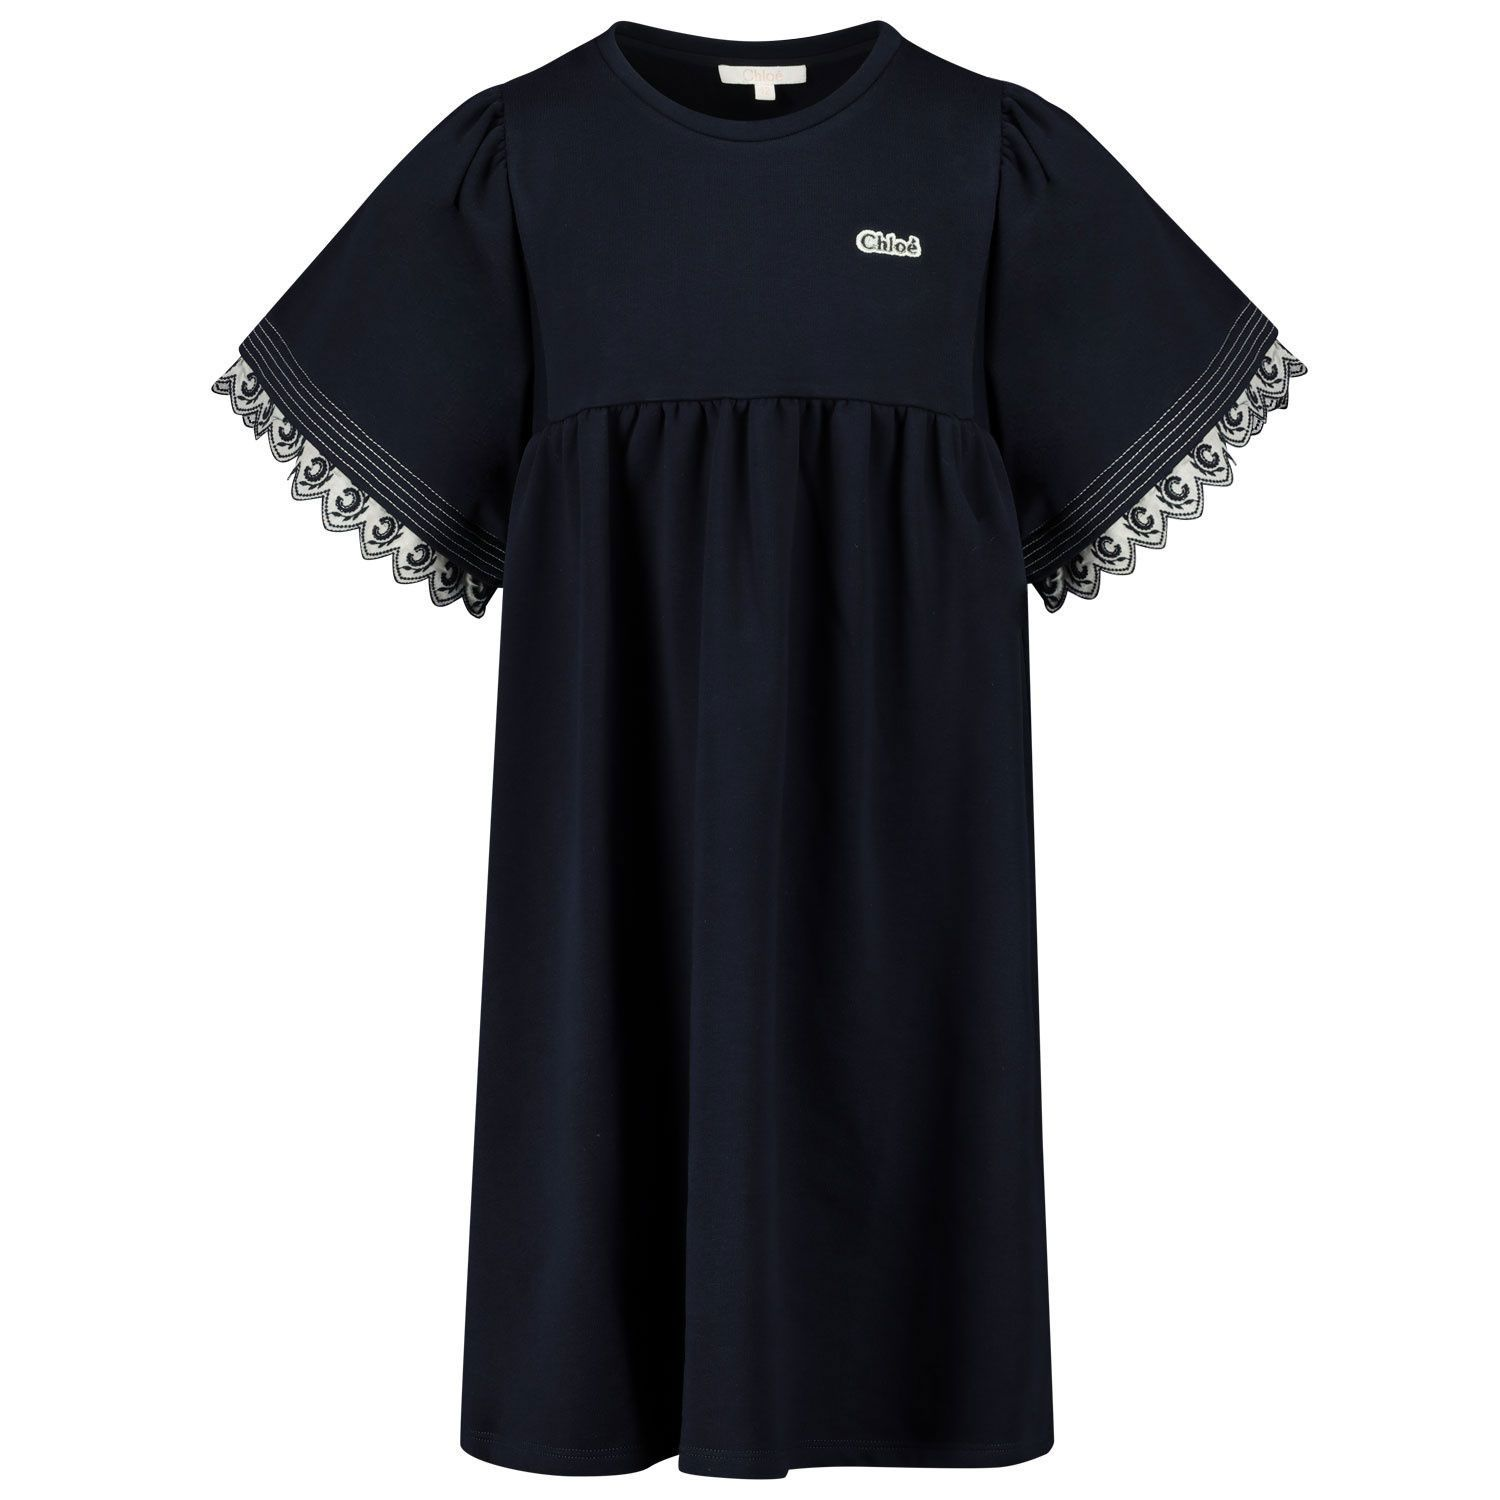 Picture of Chloé C12815 kids dress navy